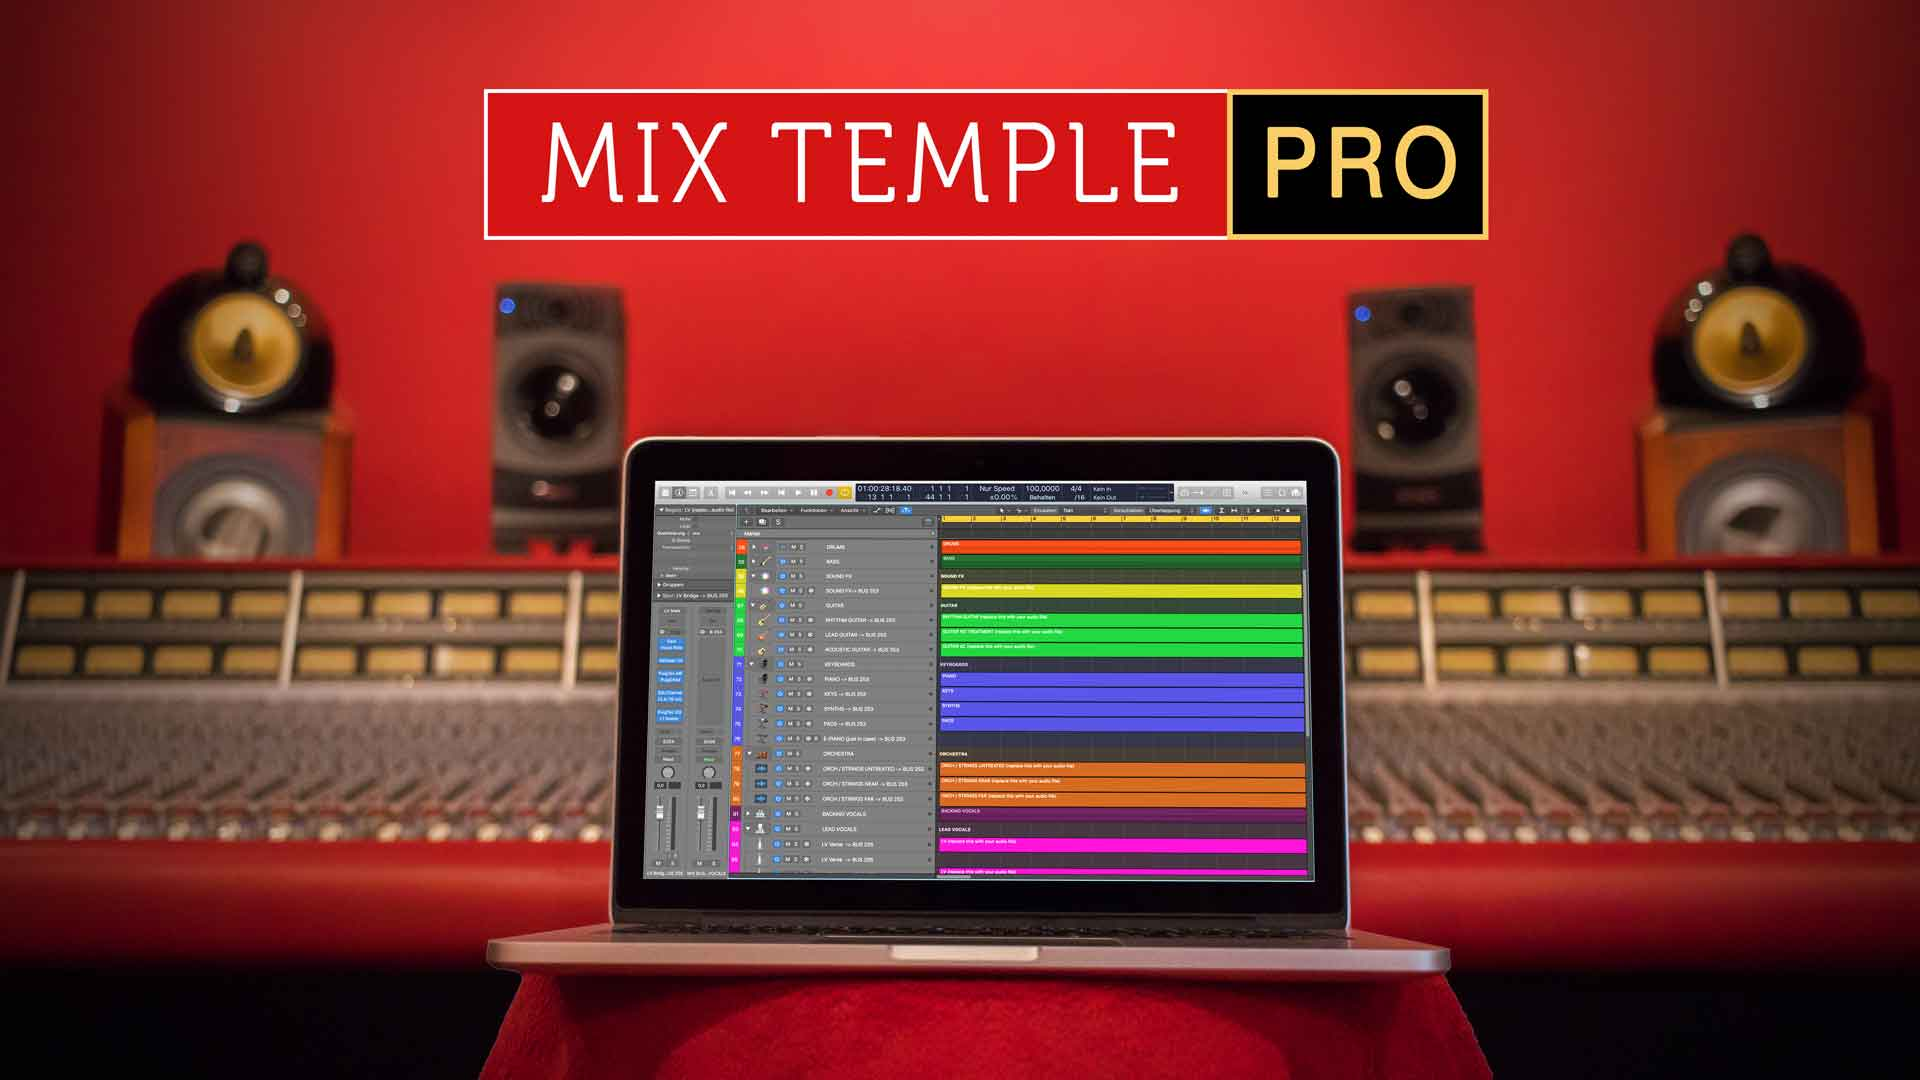 Mix Temple PRO - Mixed by Marc Mozart